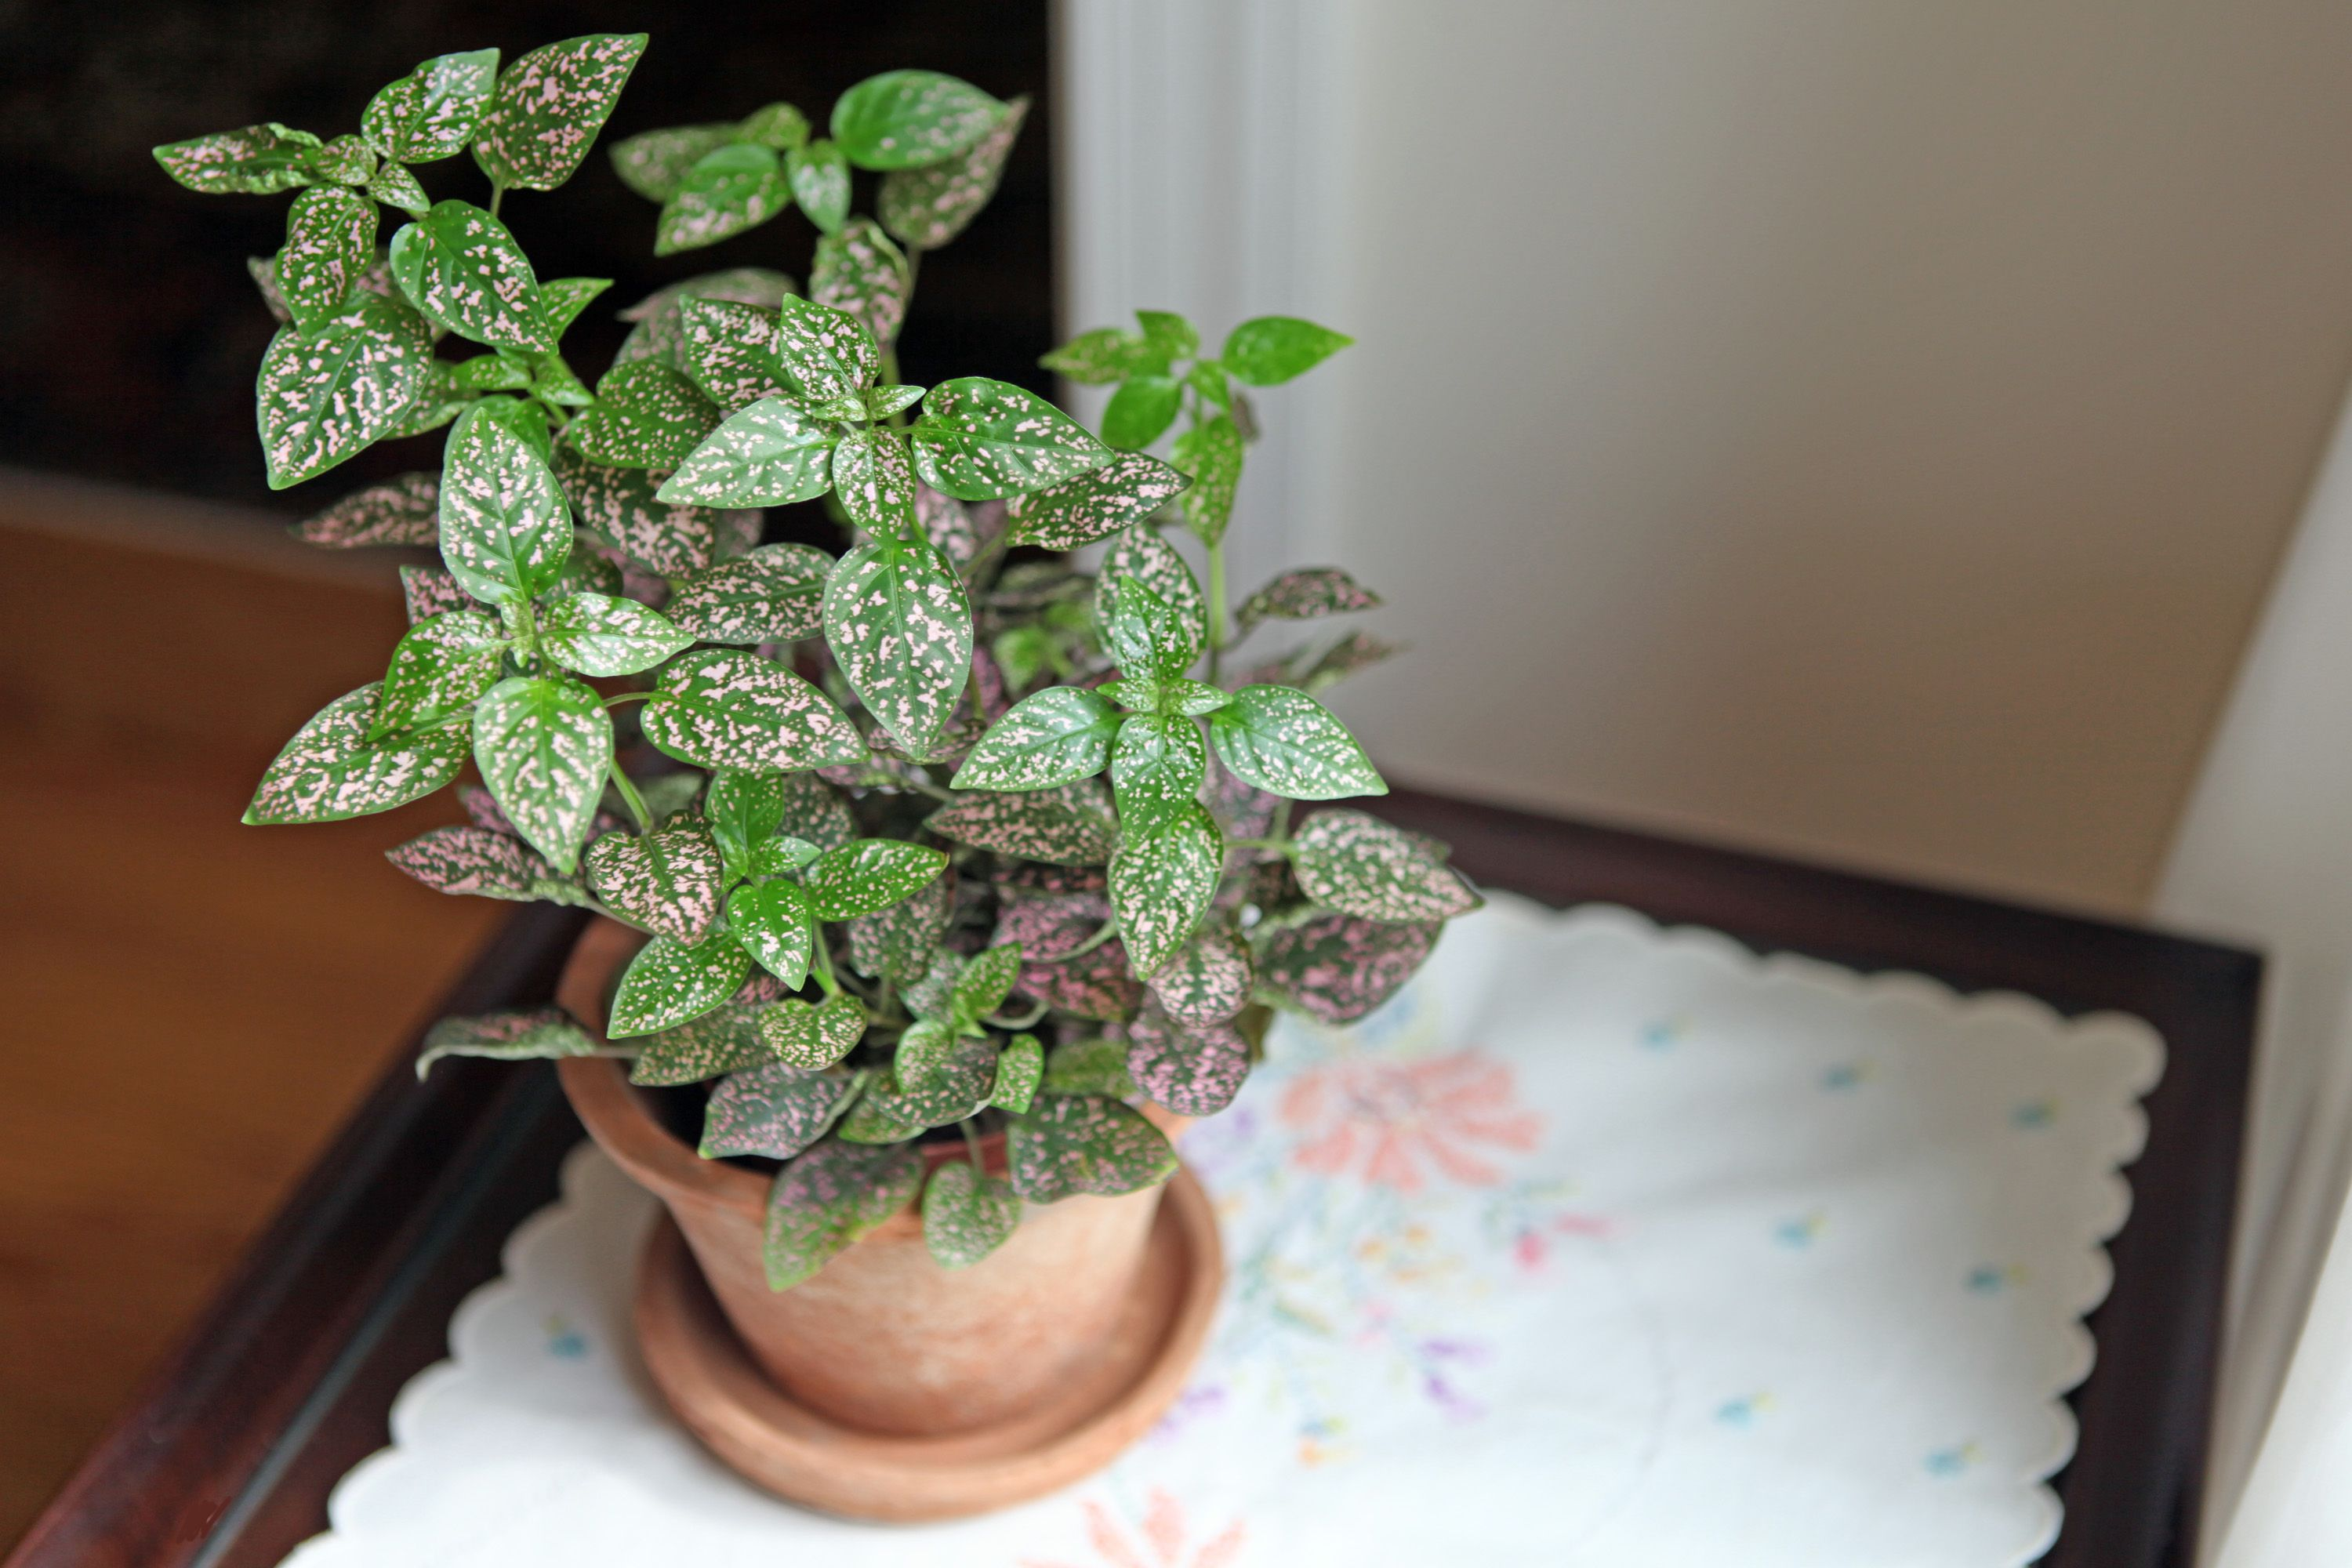 How To Care For A Polka Dot Plant